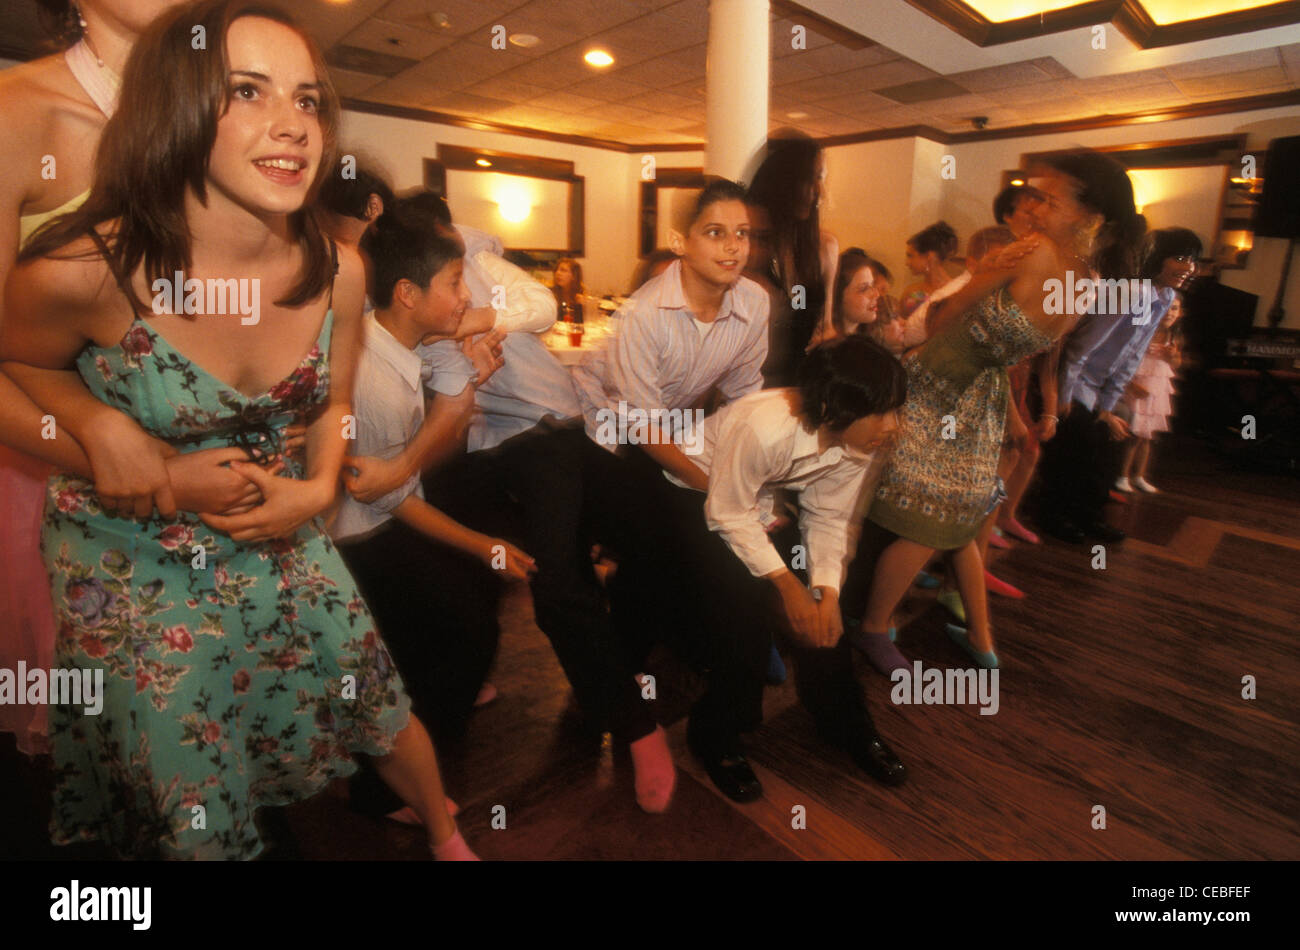 Young friends and relatives of a Jewish girl play games at her bat mitzvah party in a restaurant in New Jersey, - Stock Image